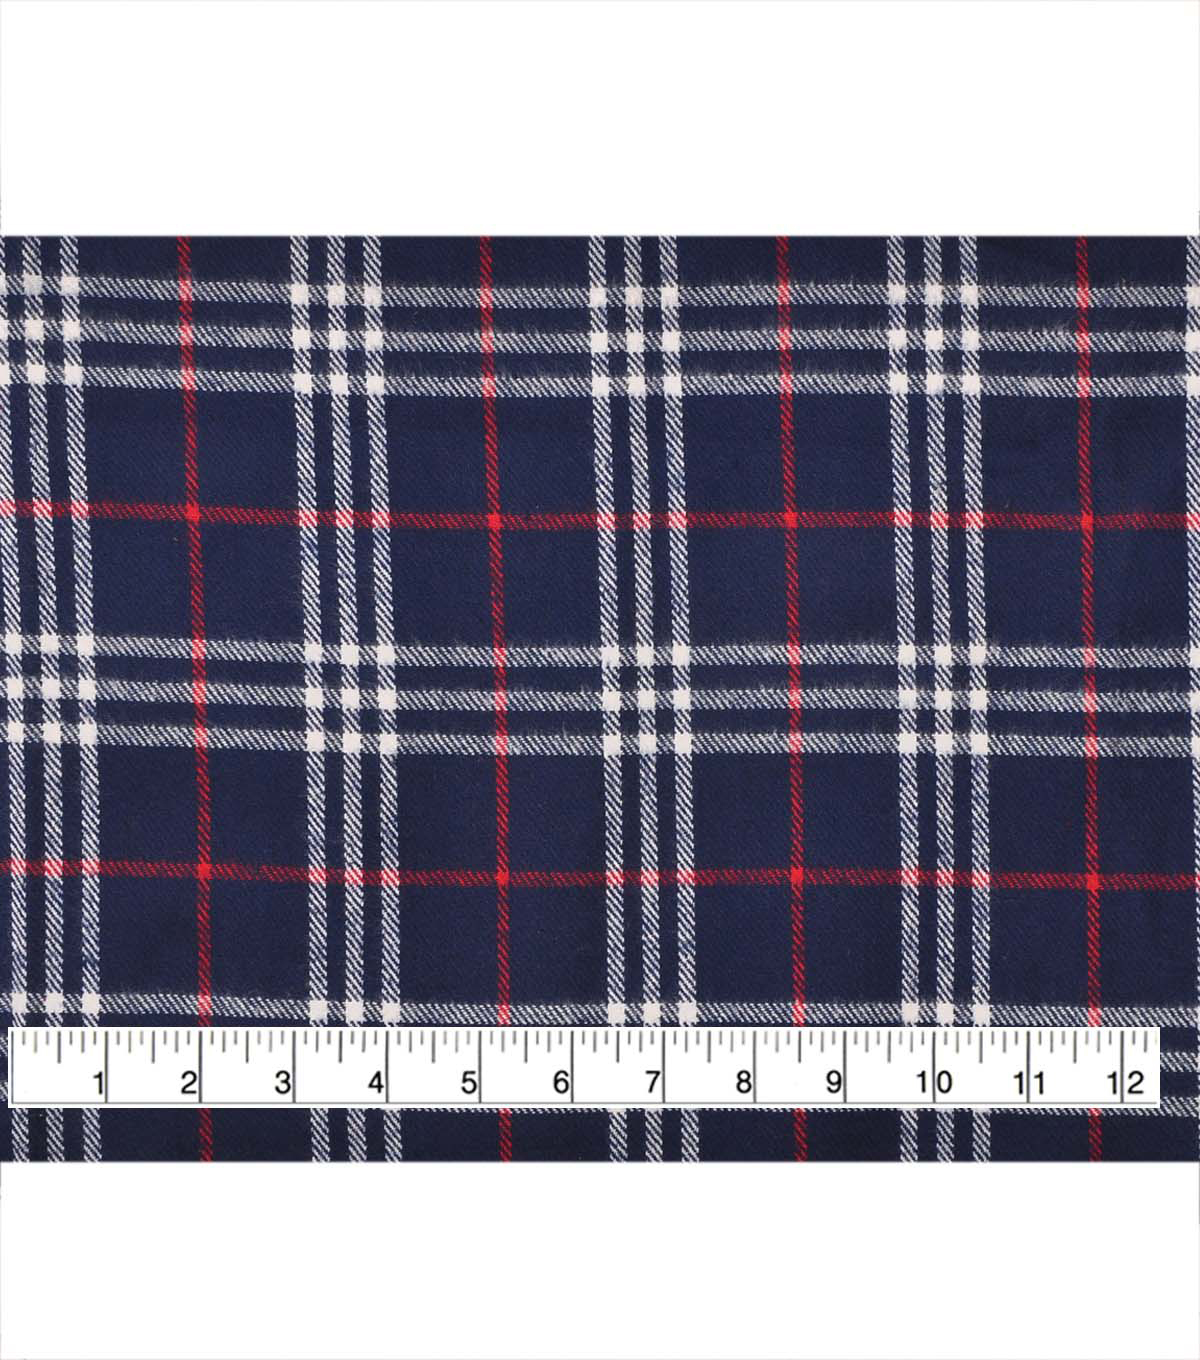 Plaiditudes Brushed Cotton Fabric -Classic Navy Red White